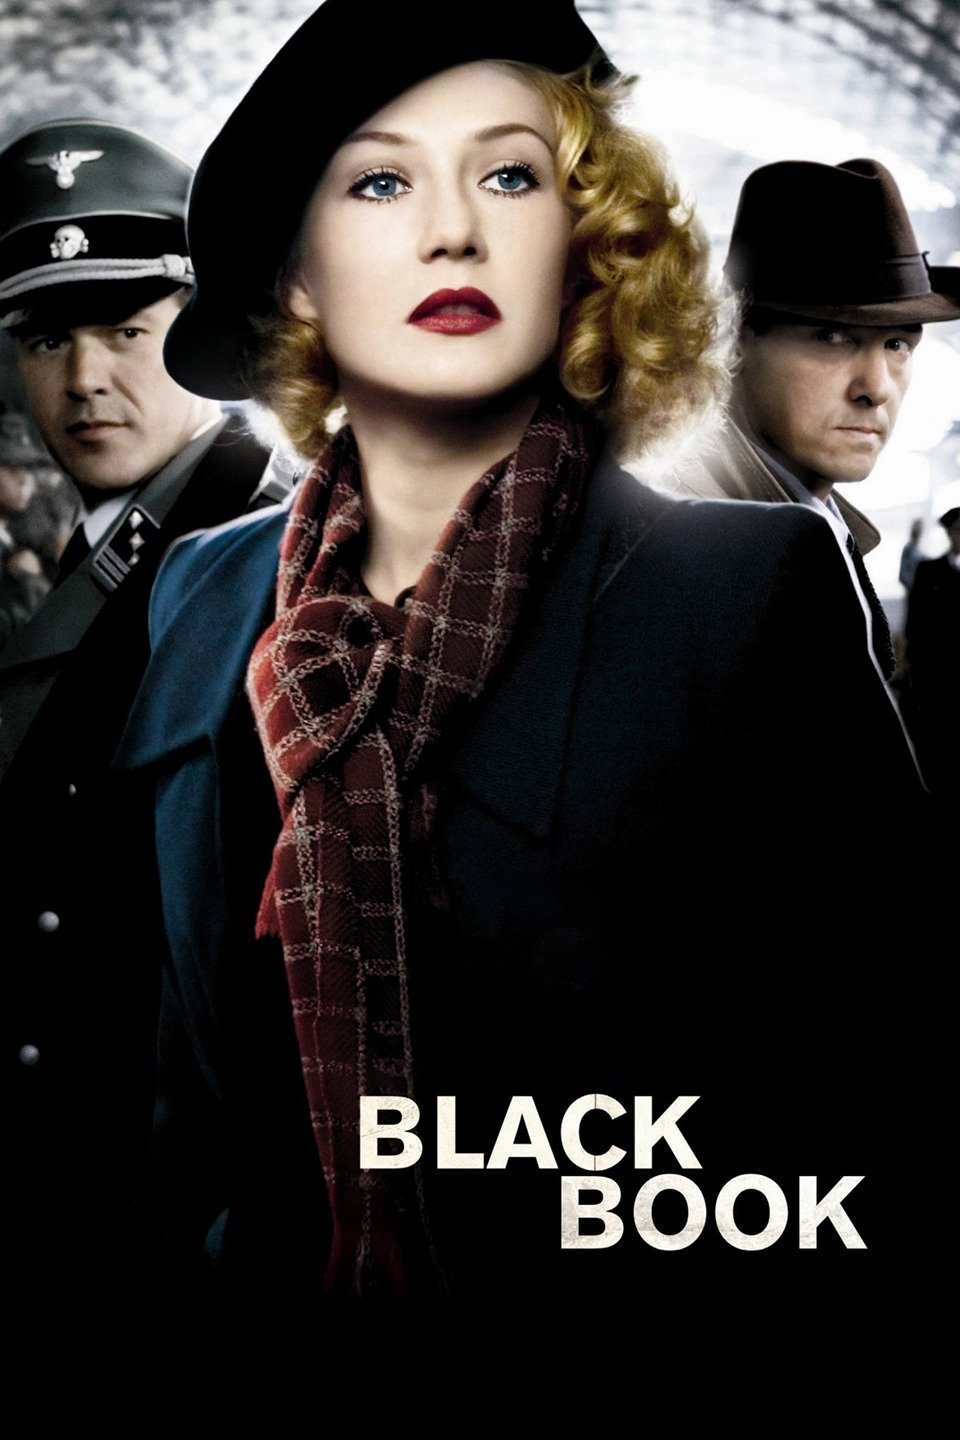 Black Book 2006 Full Movie Download BluRay 480p And 720p